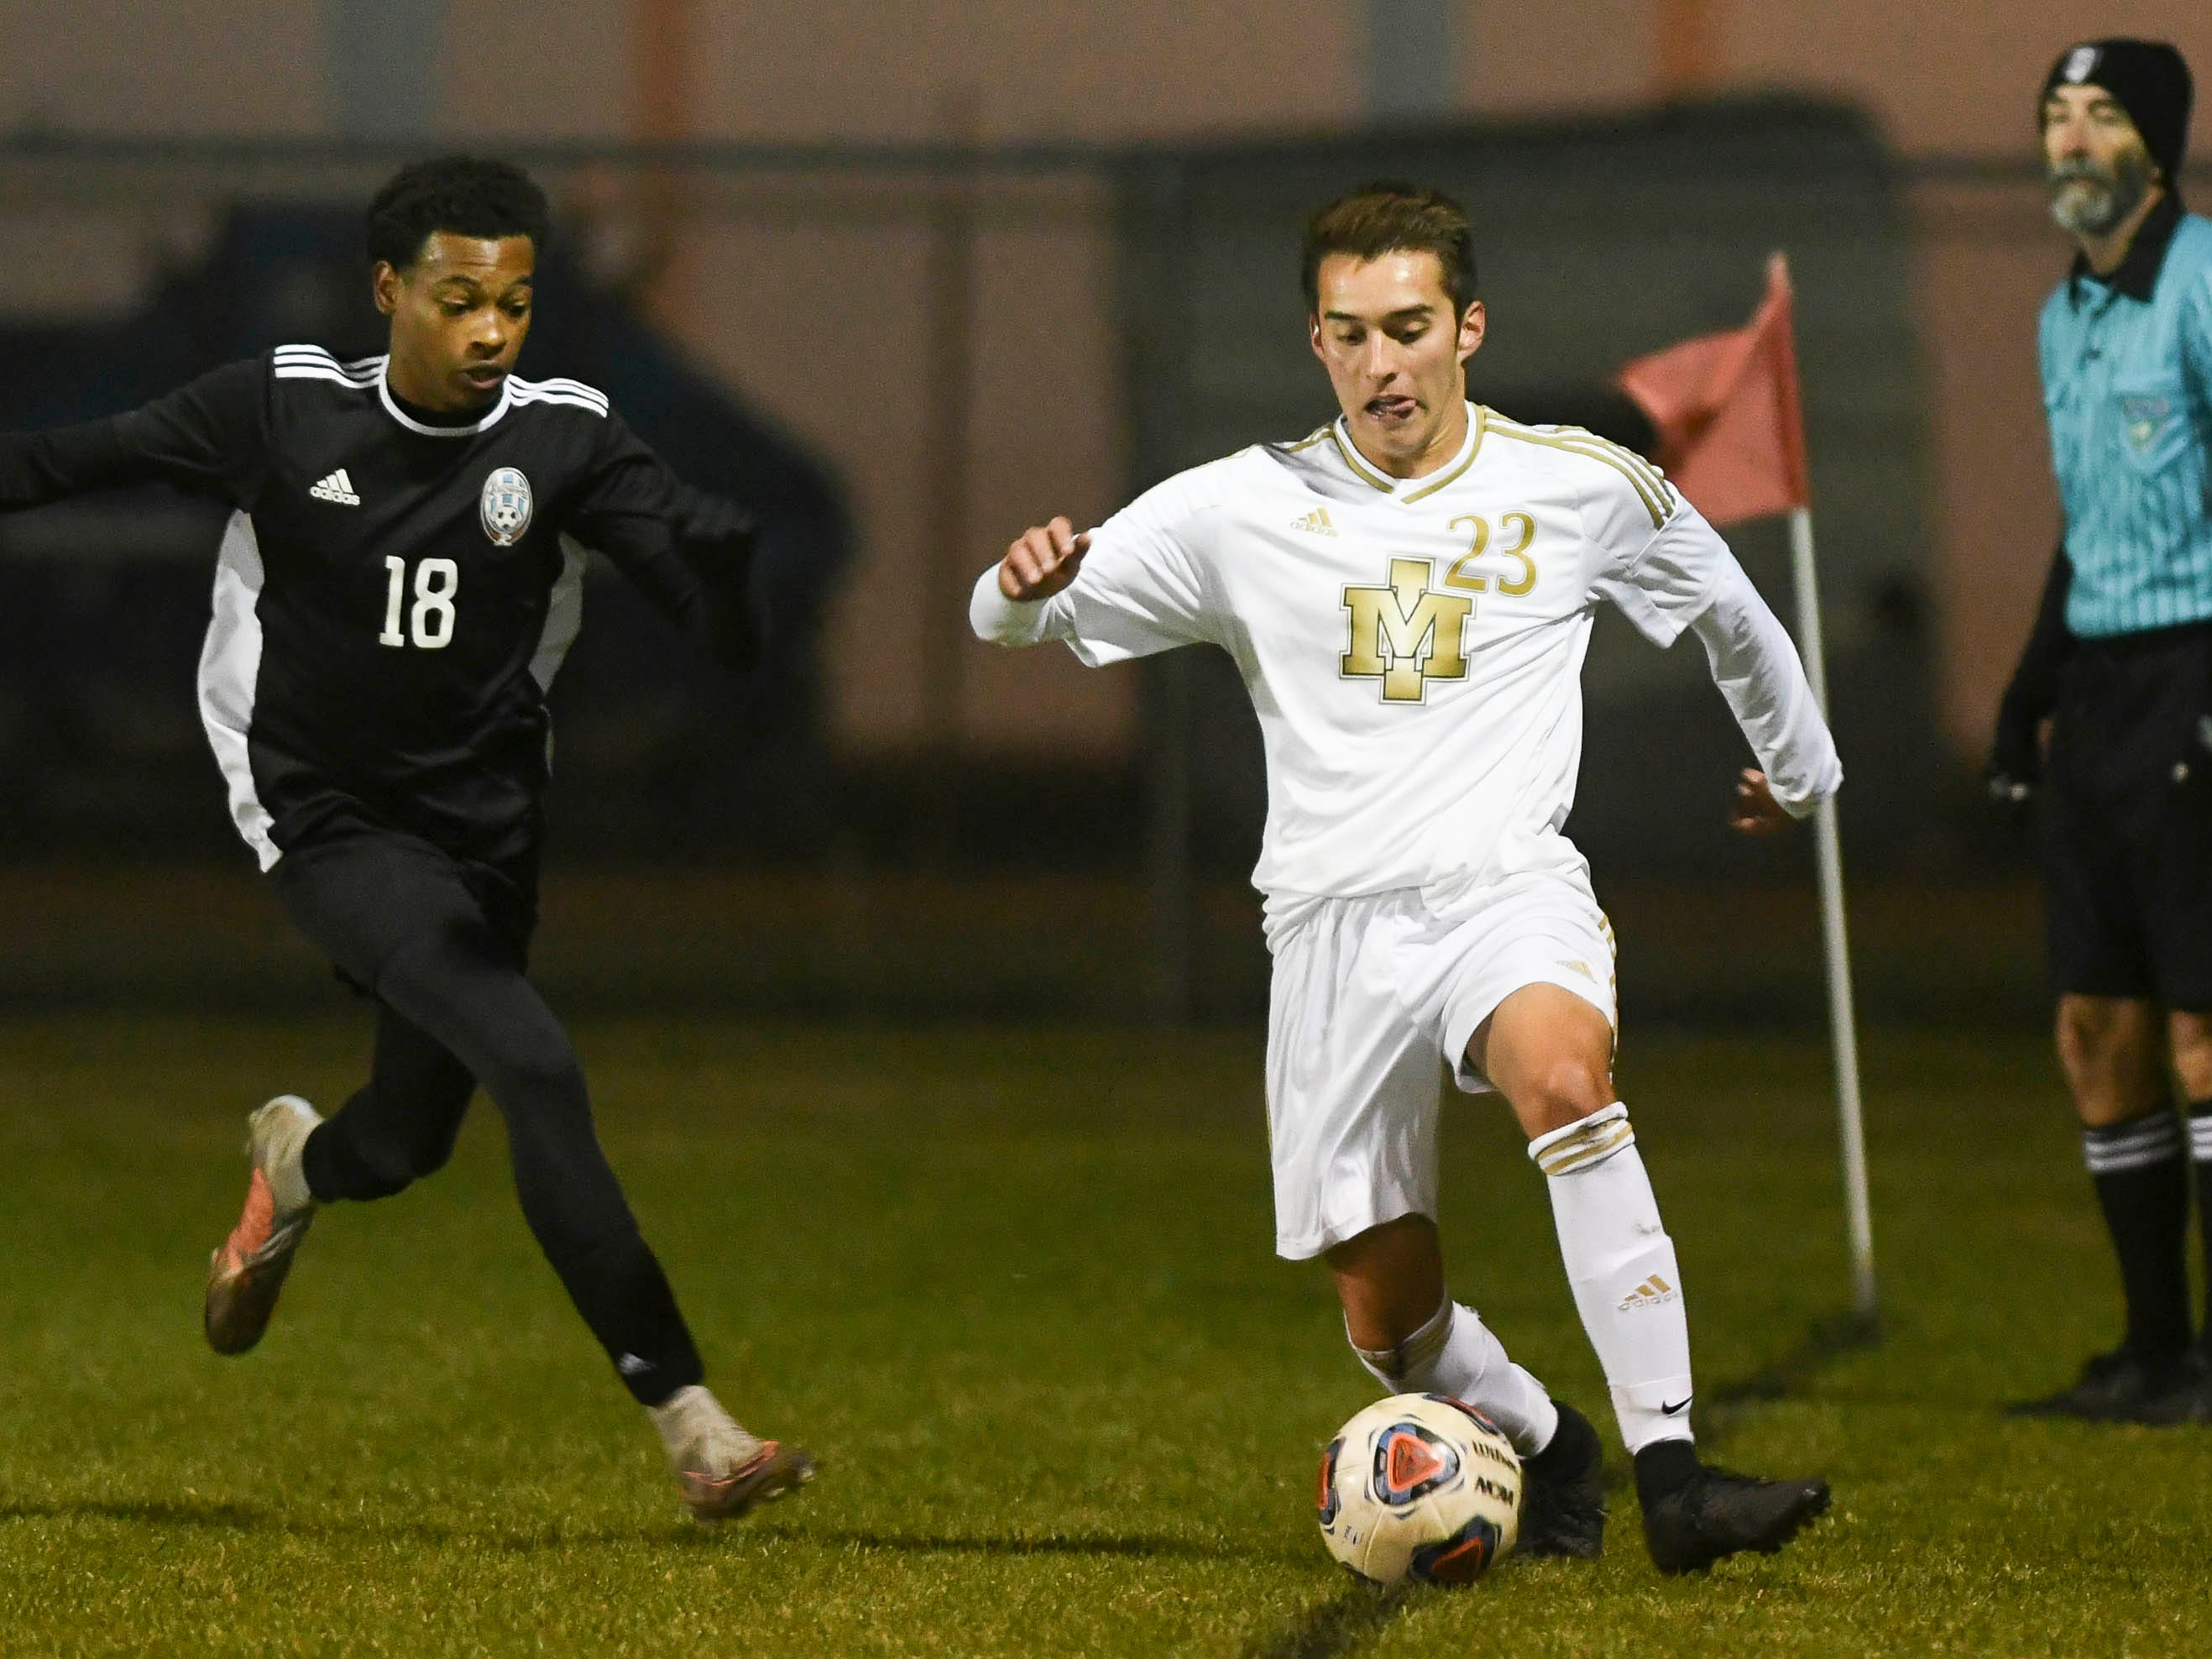 Ethan Mills of Merritt Island (23) is pursued by Ty Moore of Rockledge during Wednesday's District 12, Class 3A semifinal at McLarty Stadium